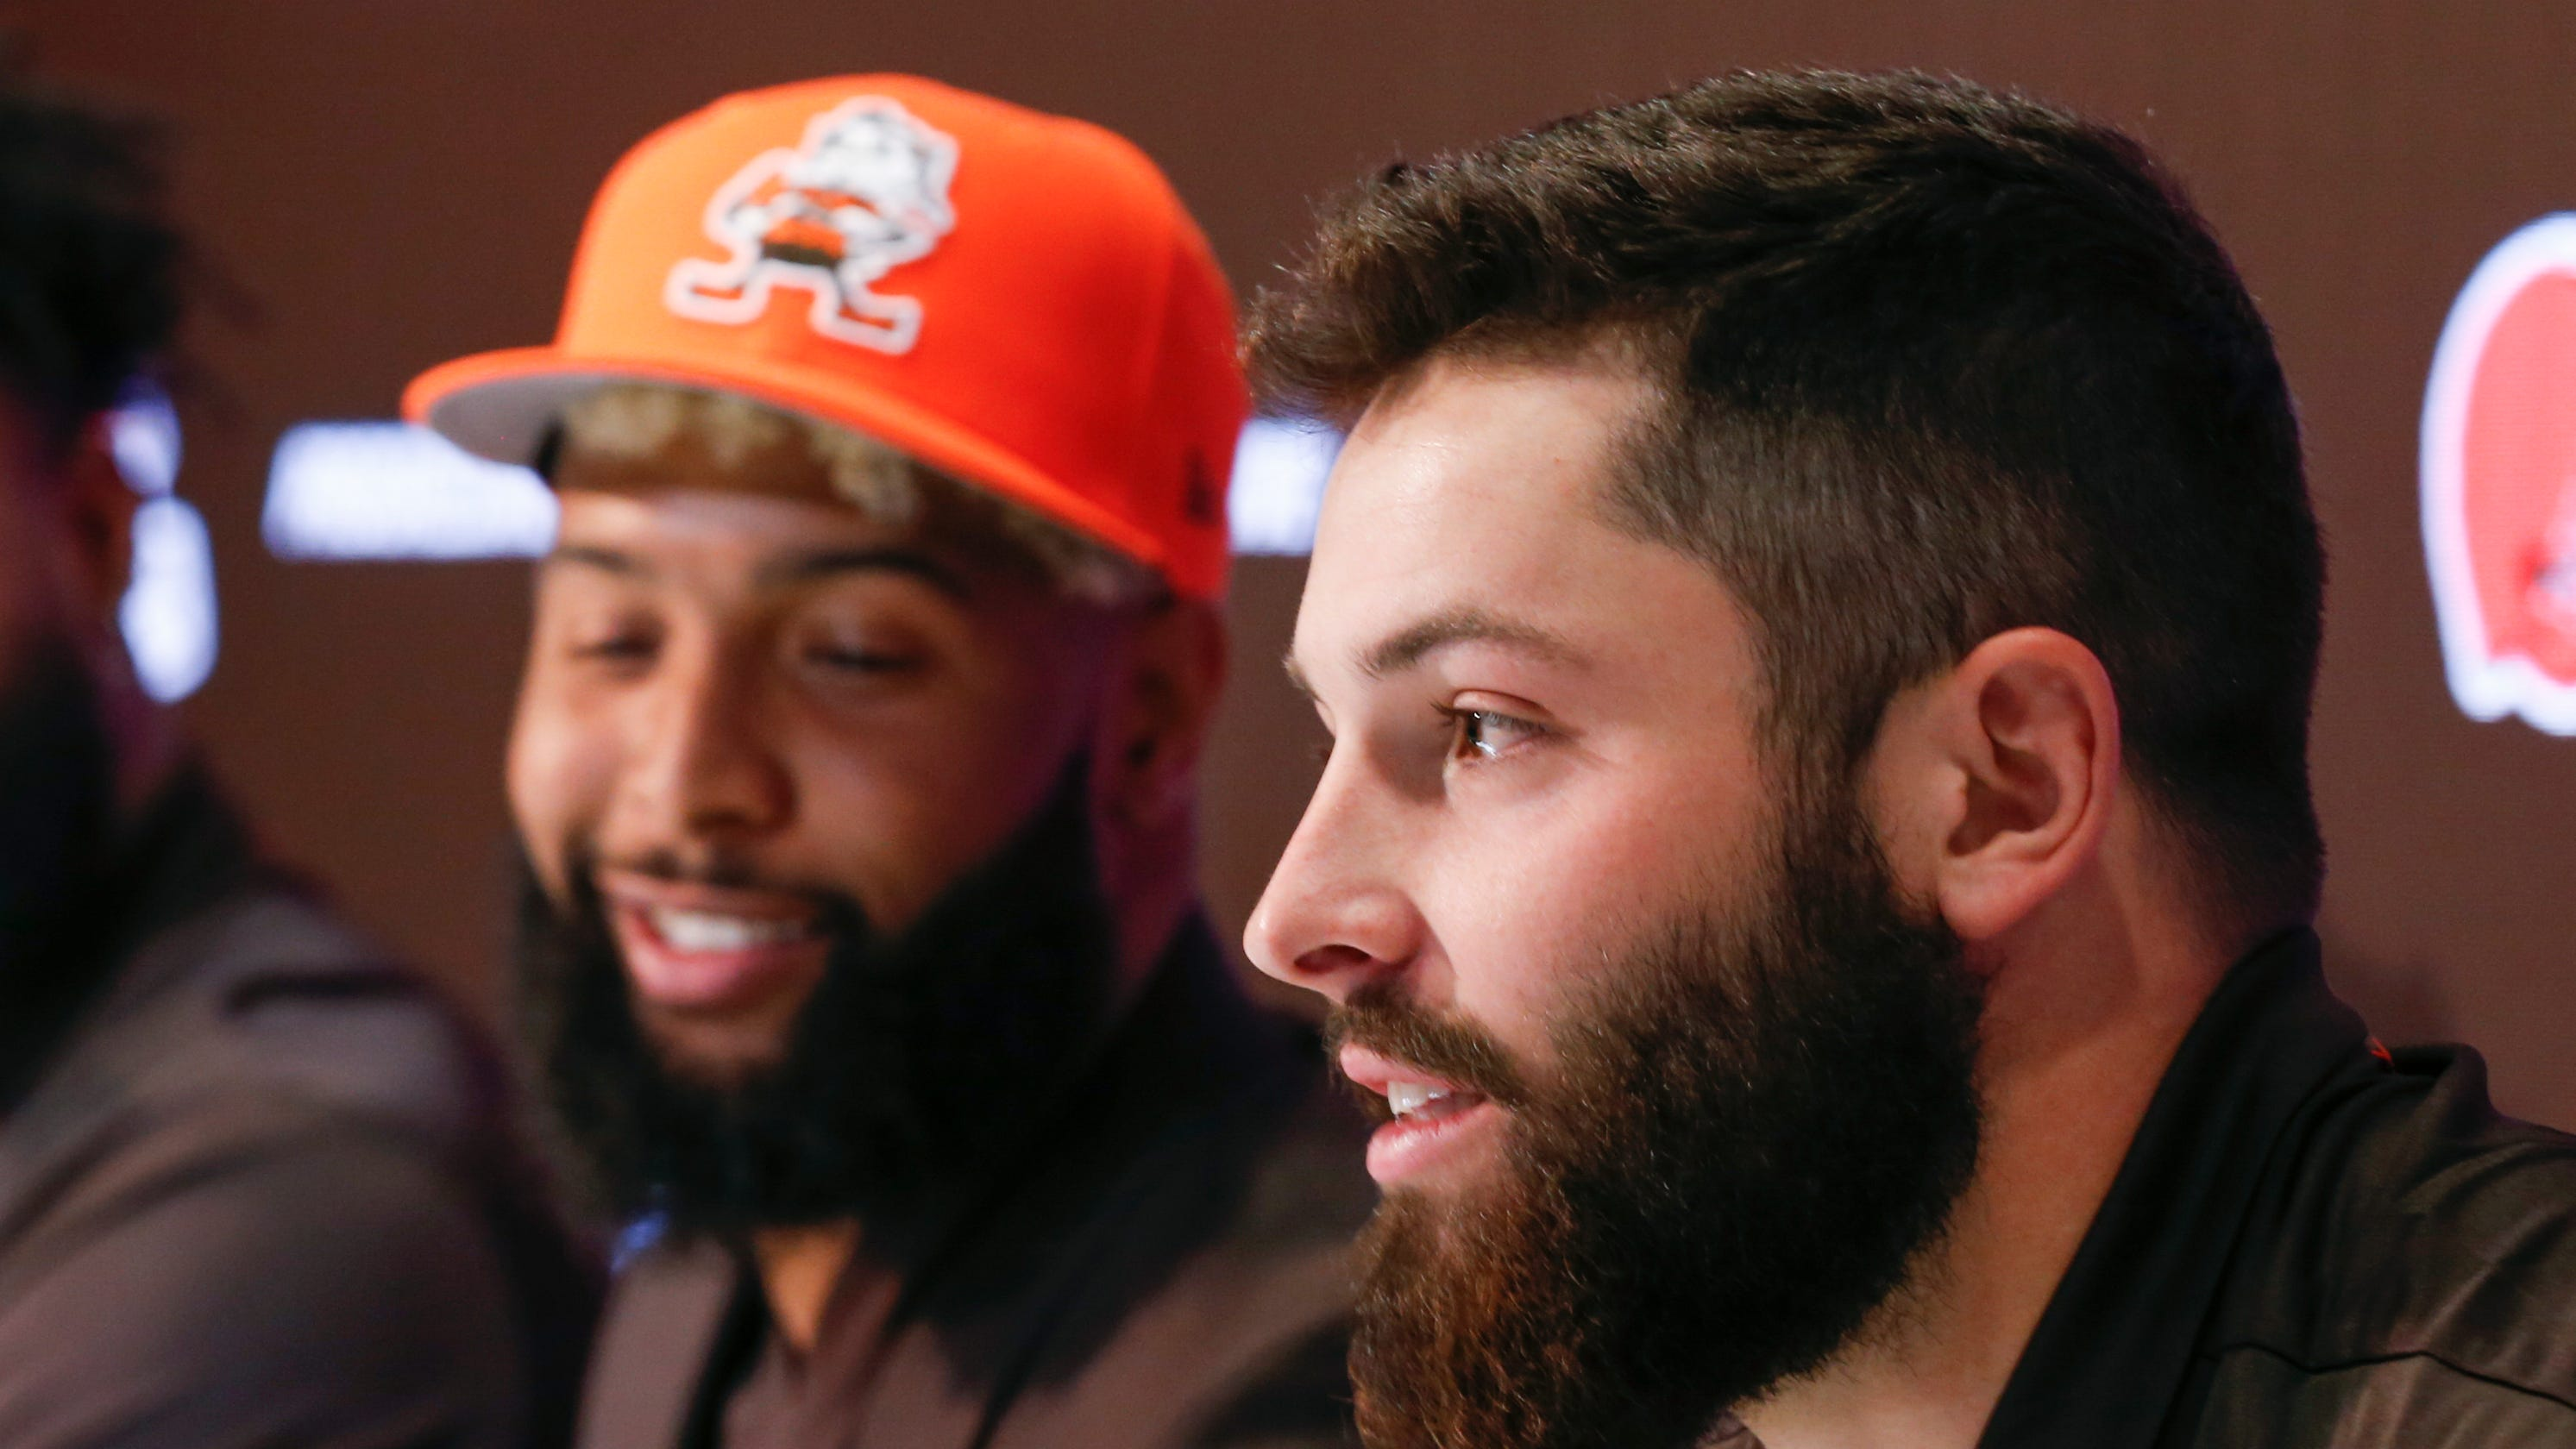 Baker Mayfield bashes Giants fans in defense of Odell Beckham Jr.